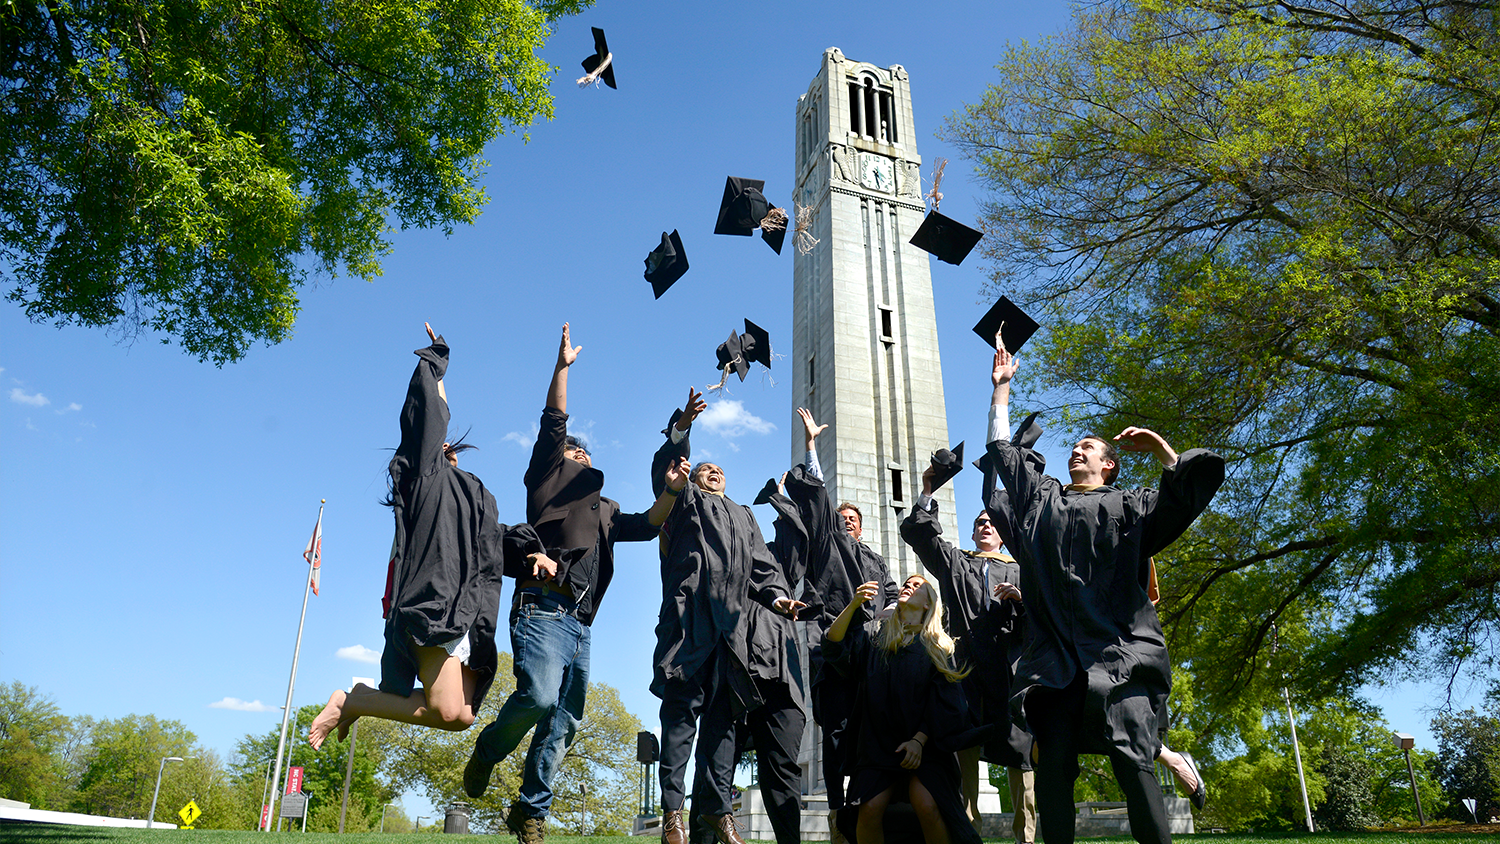 A group photo of Master students who are jumping for air in their black cap and gown in front of the NCState belltower.